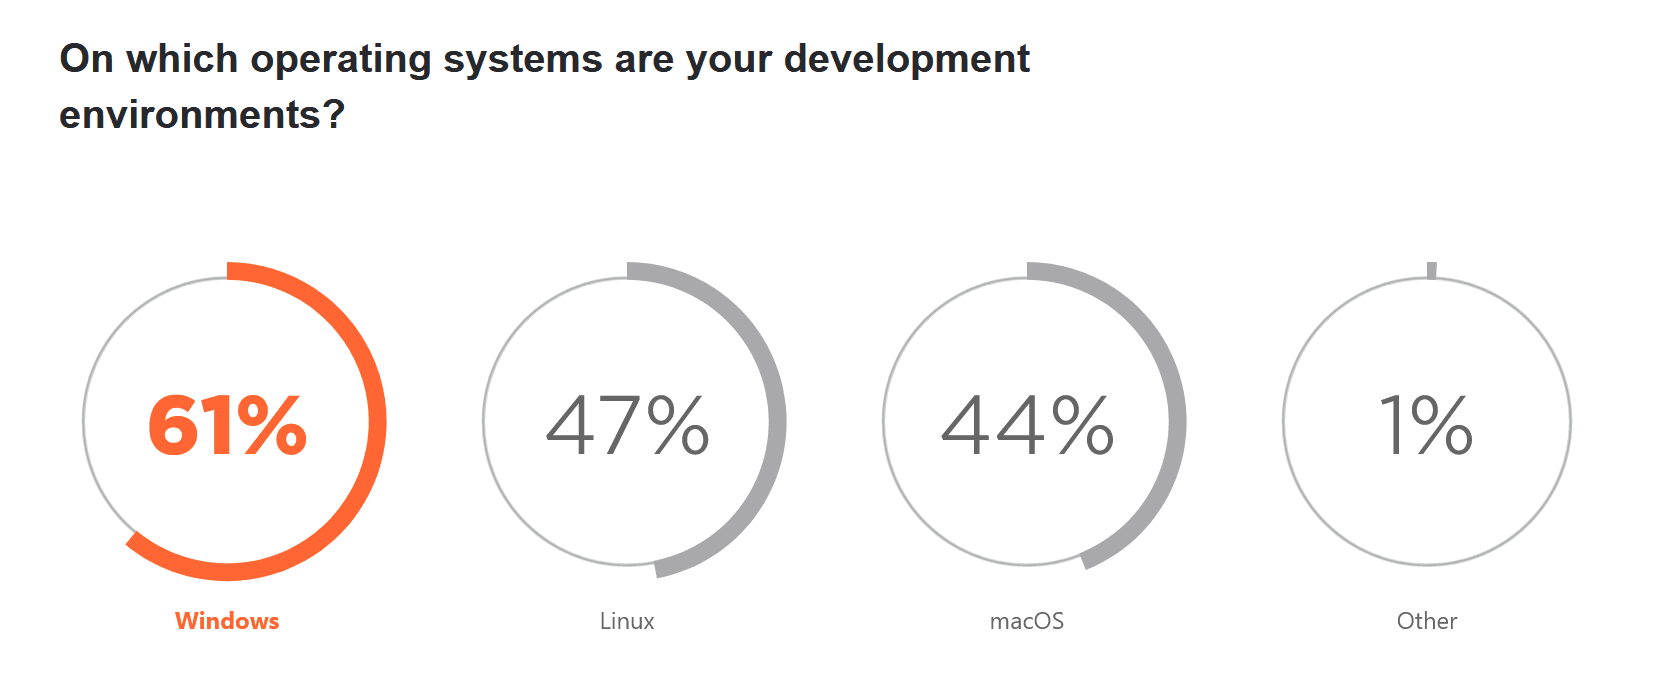 Most popular OS for .NET development is Windows, then Linux and macOS